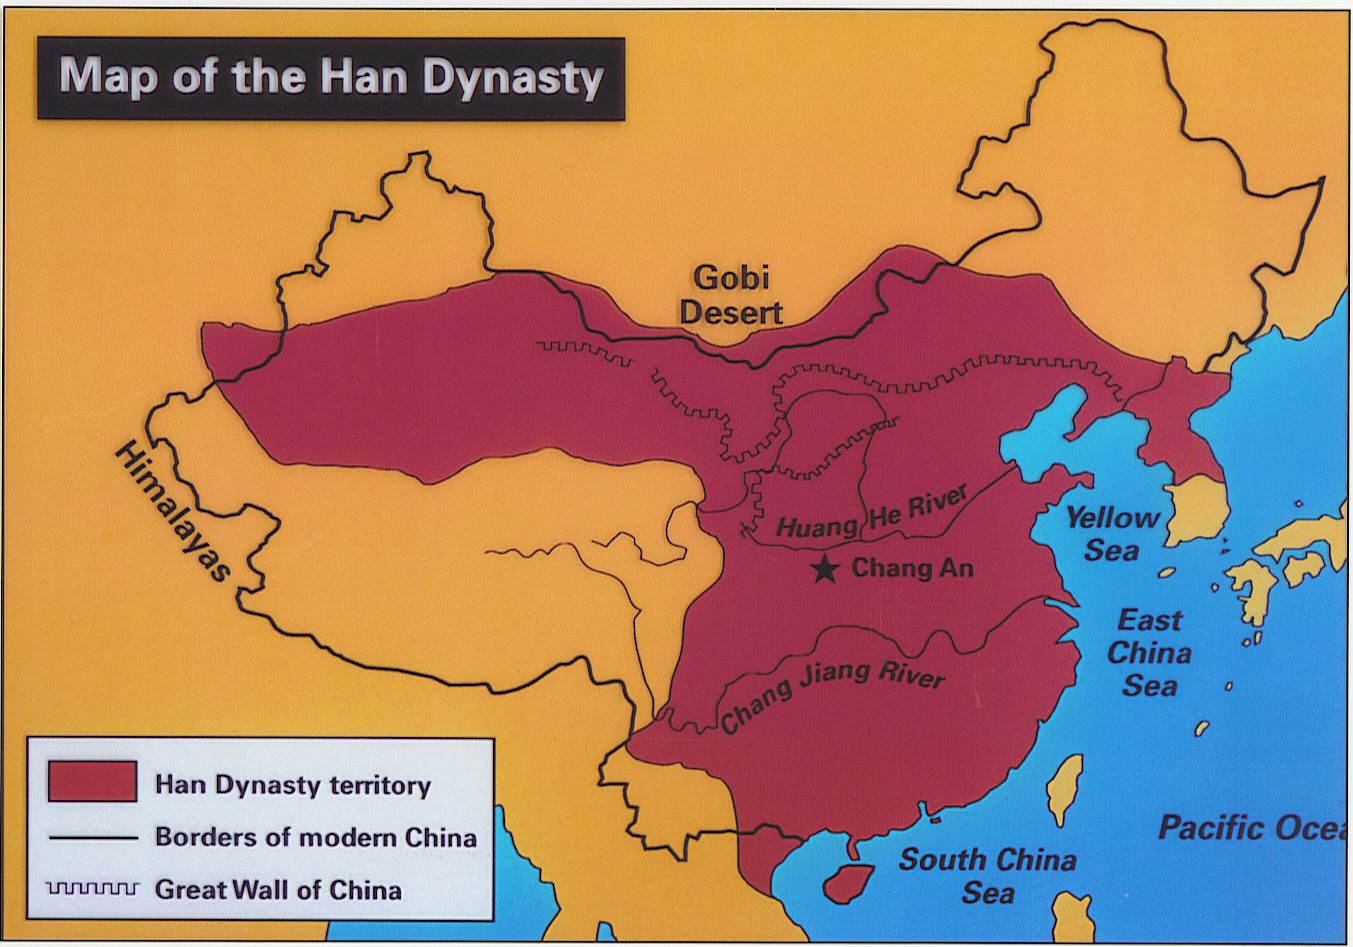 Ancient world history wiki licensed for non commercial use only han dynasty gumiabroncs Image collections